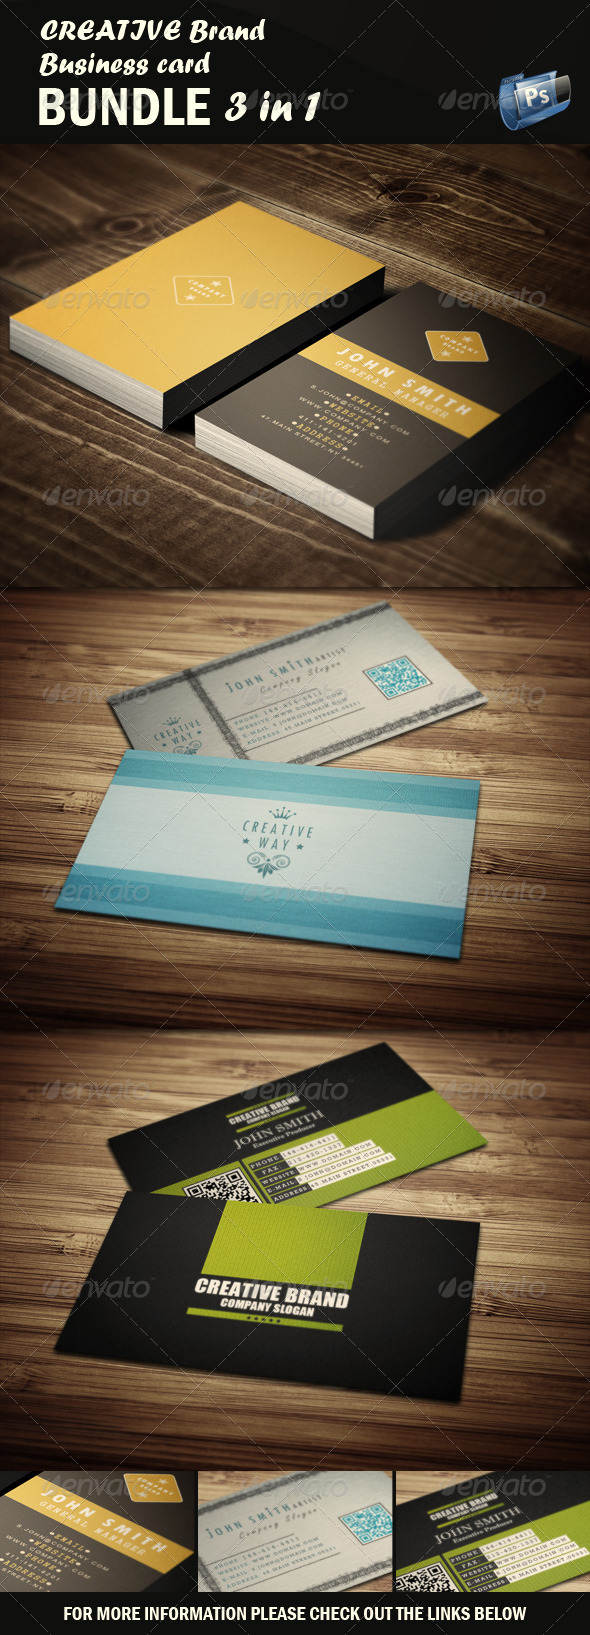 Creative Business Card - Bundle 3 in 1 - Creative Business Cards